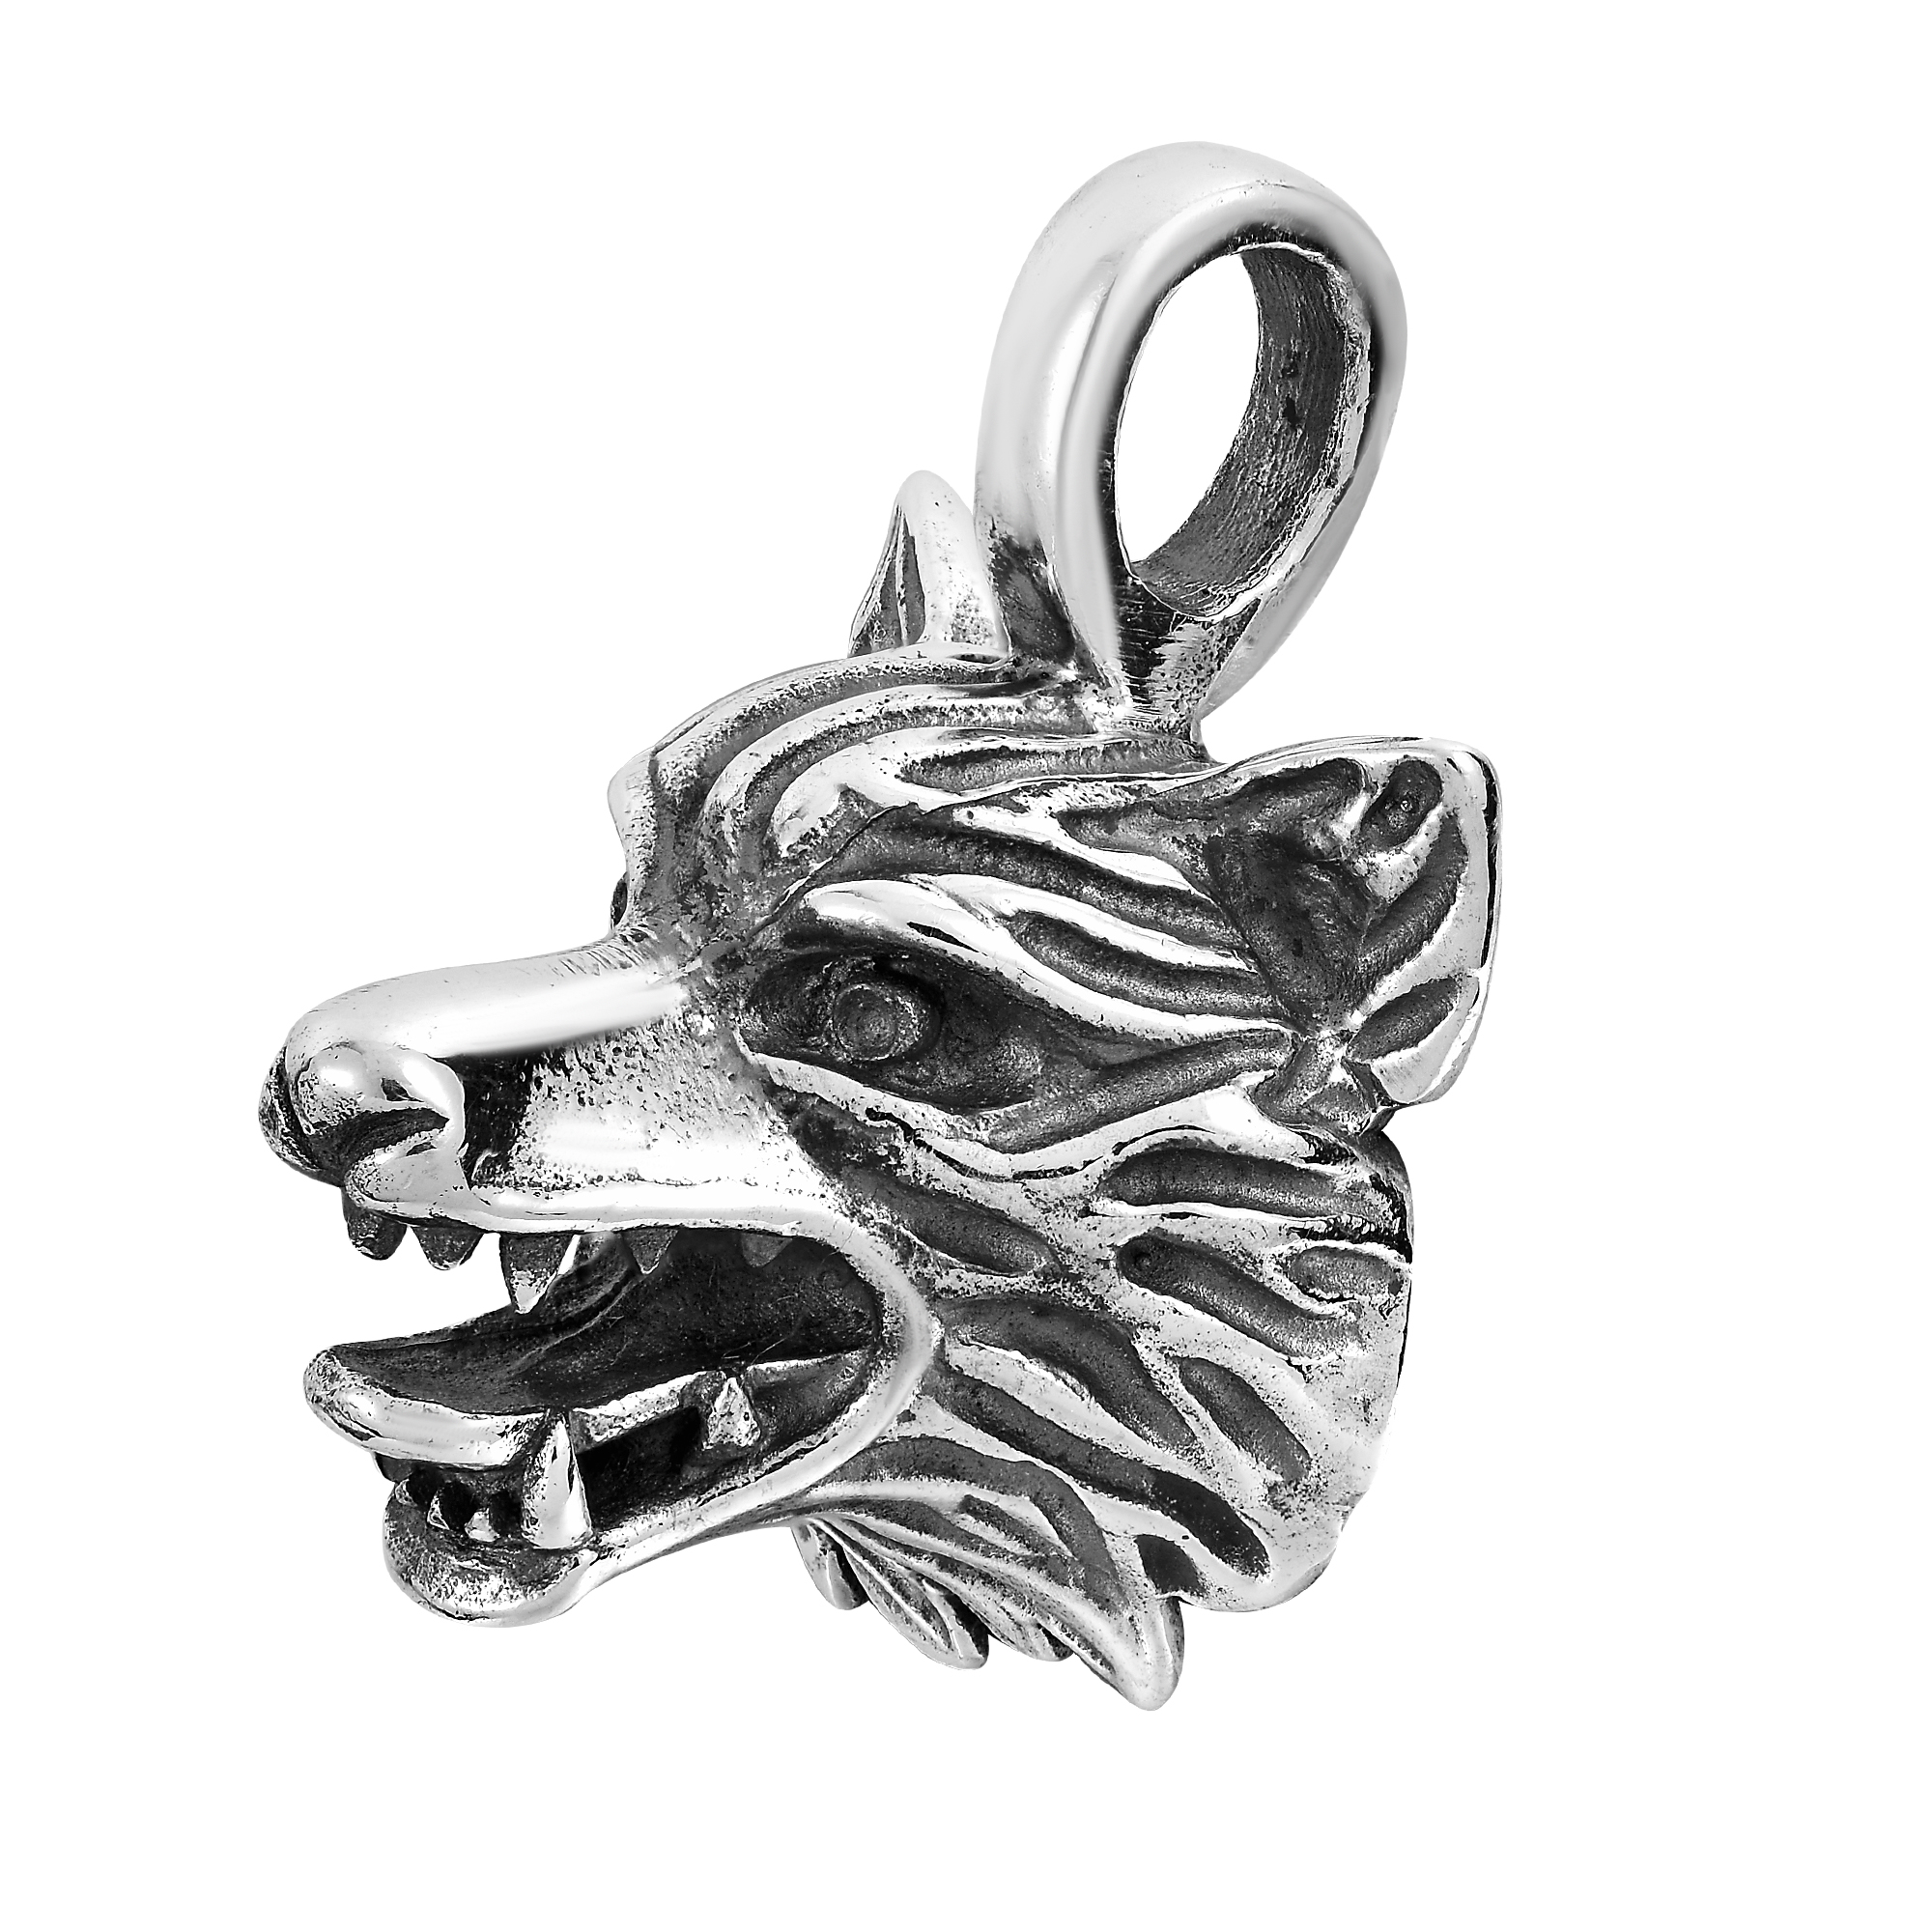 hot jewelry pin fashion supernatural necklace dropshipping huidang celt viking men pendant head sell wolf